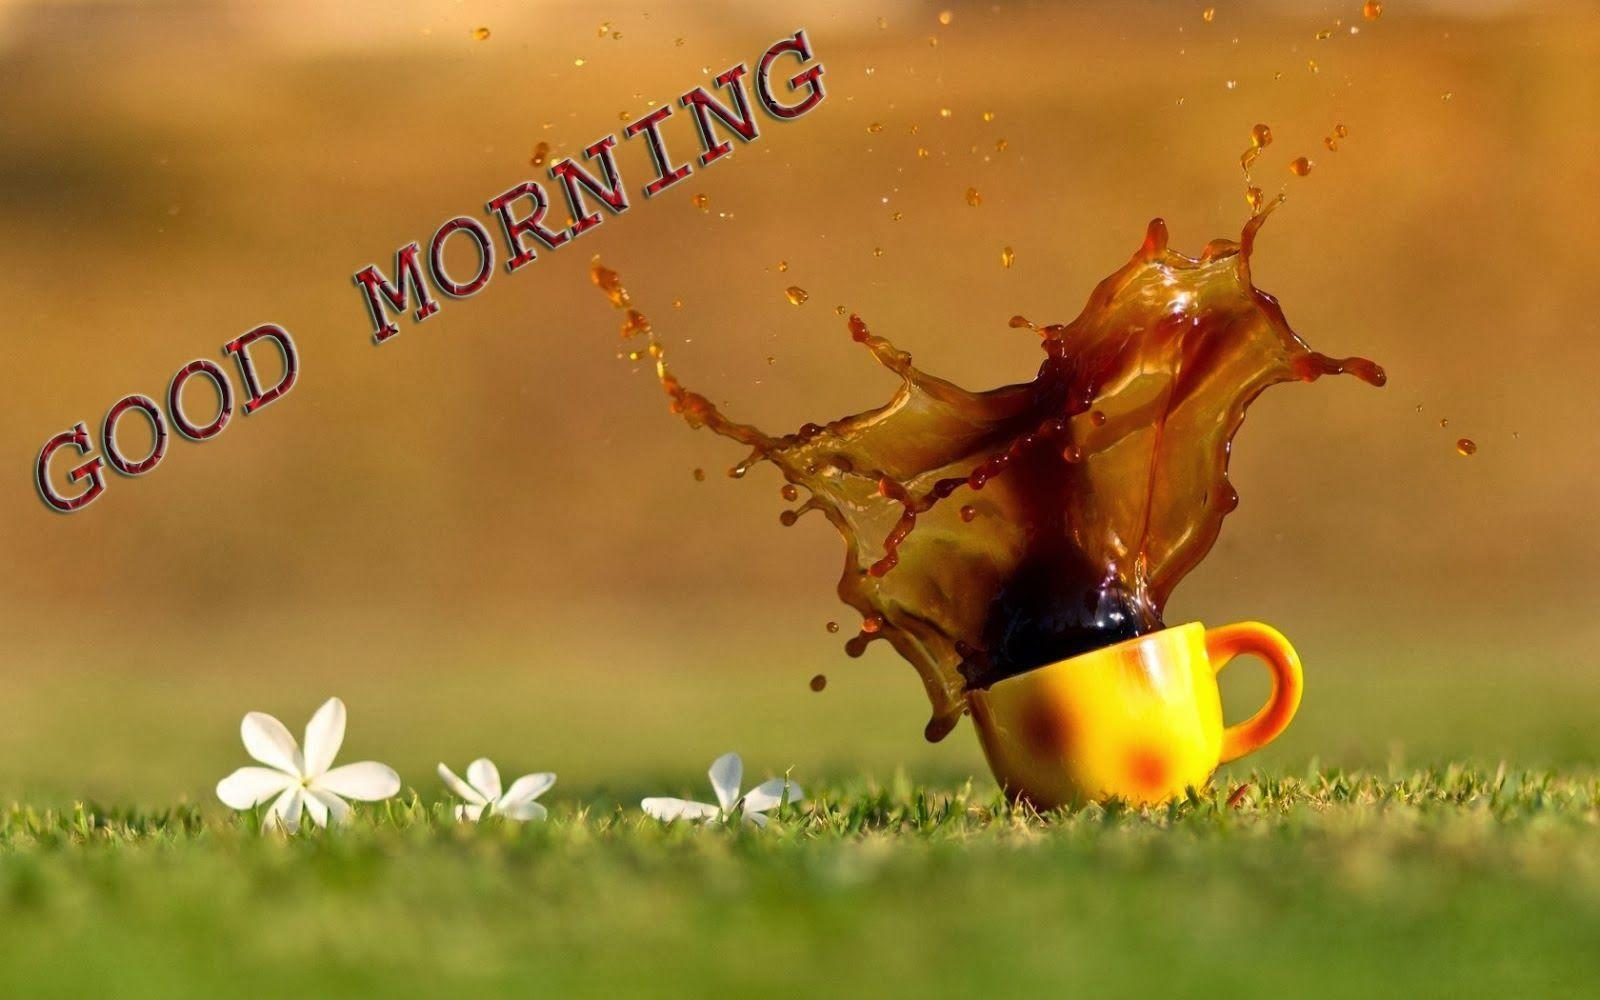 Hd wallpaper of good morning - Sms With Wallpapers Good Morning Hd Wallpapers 2014